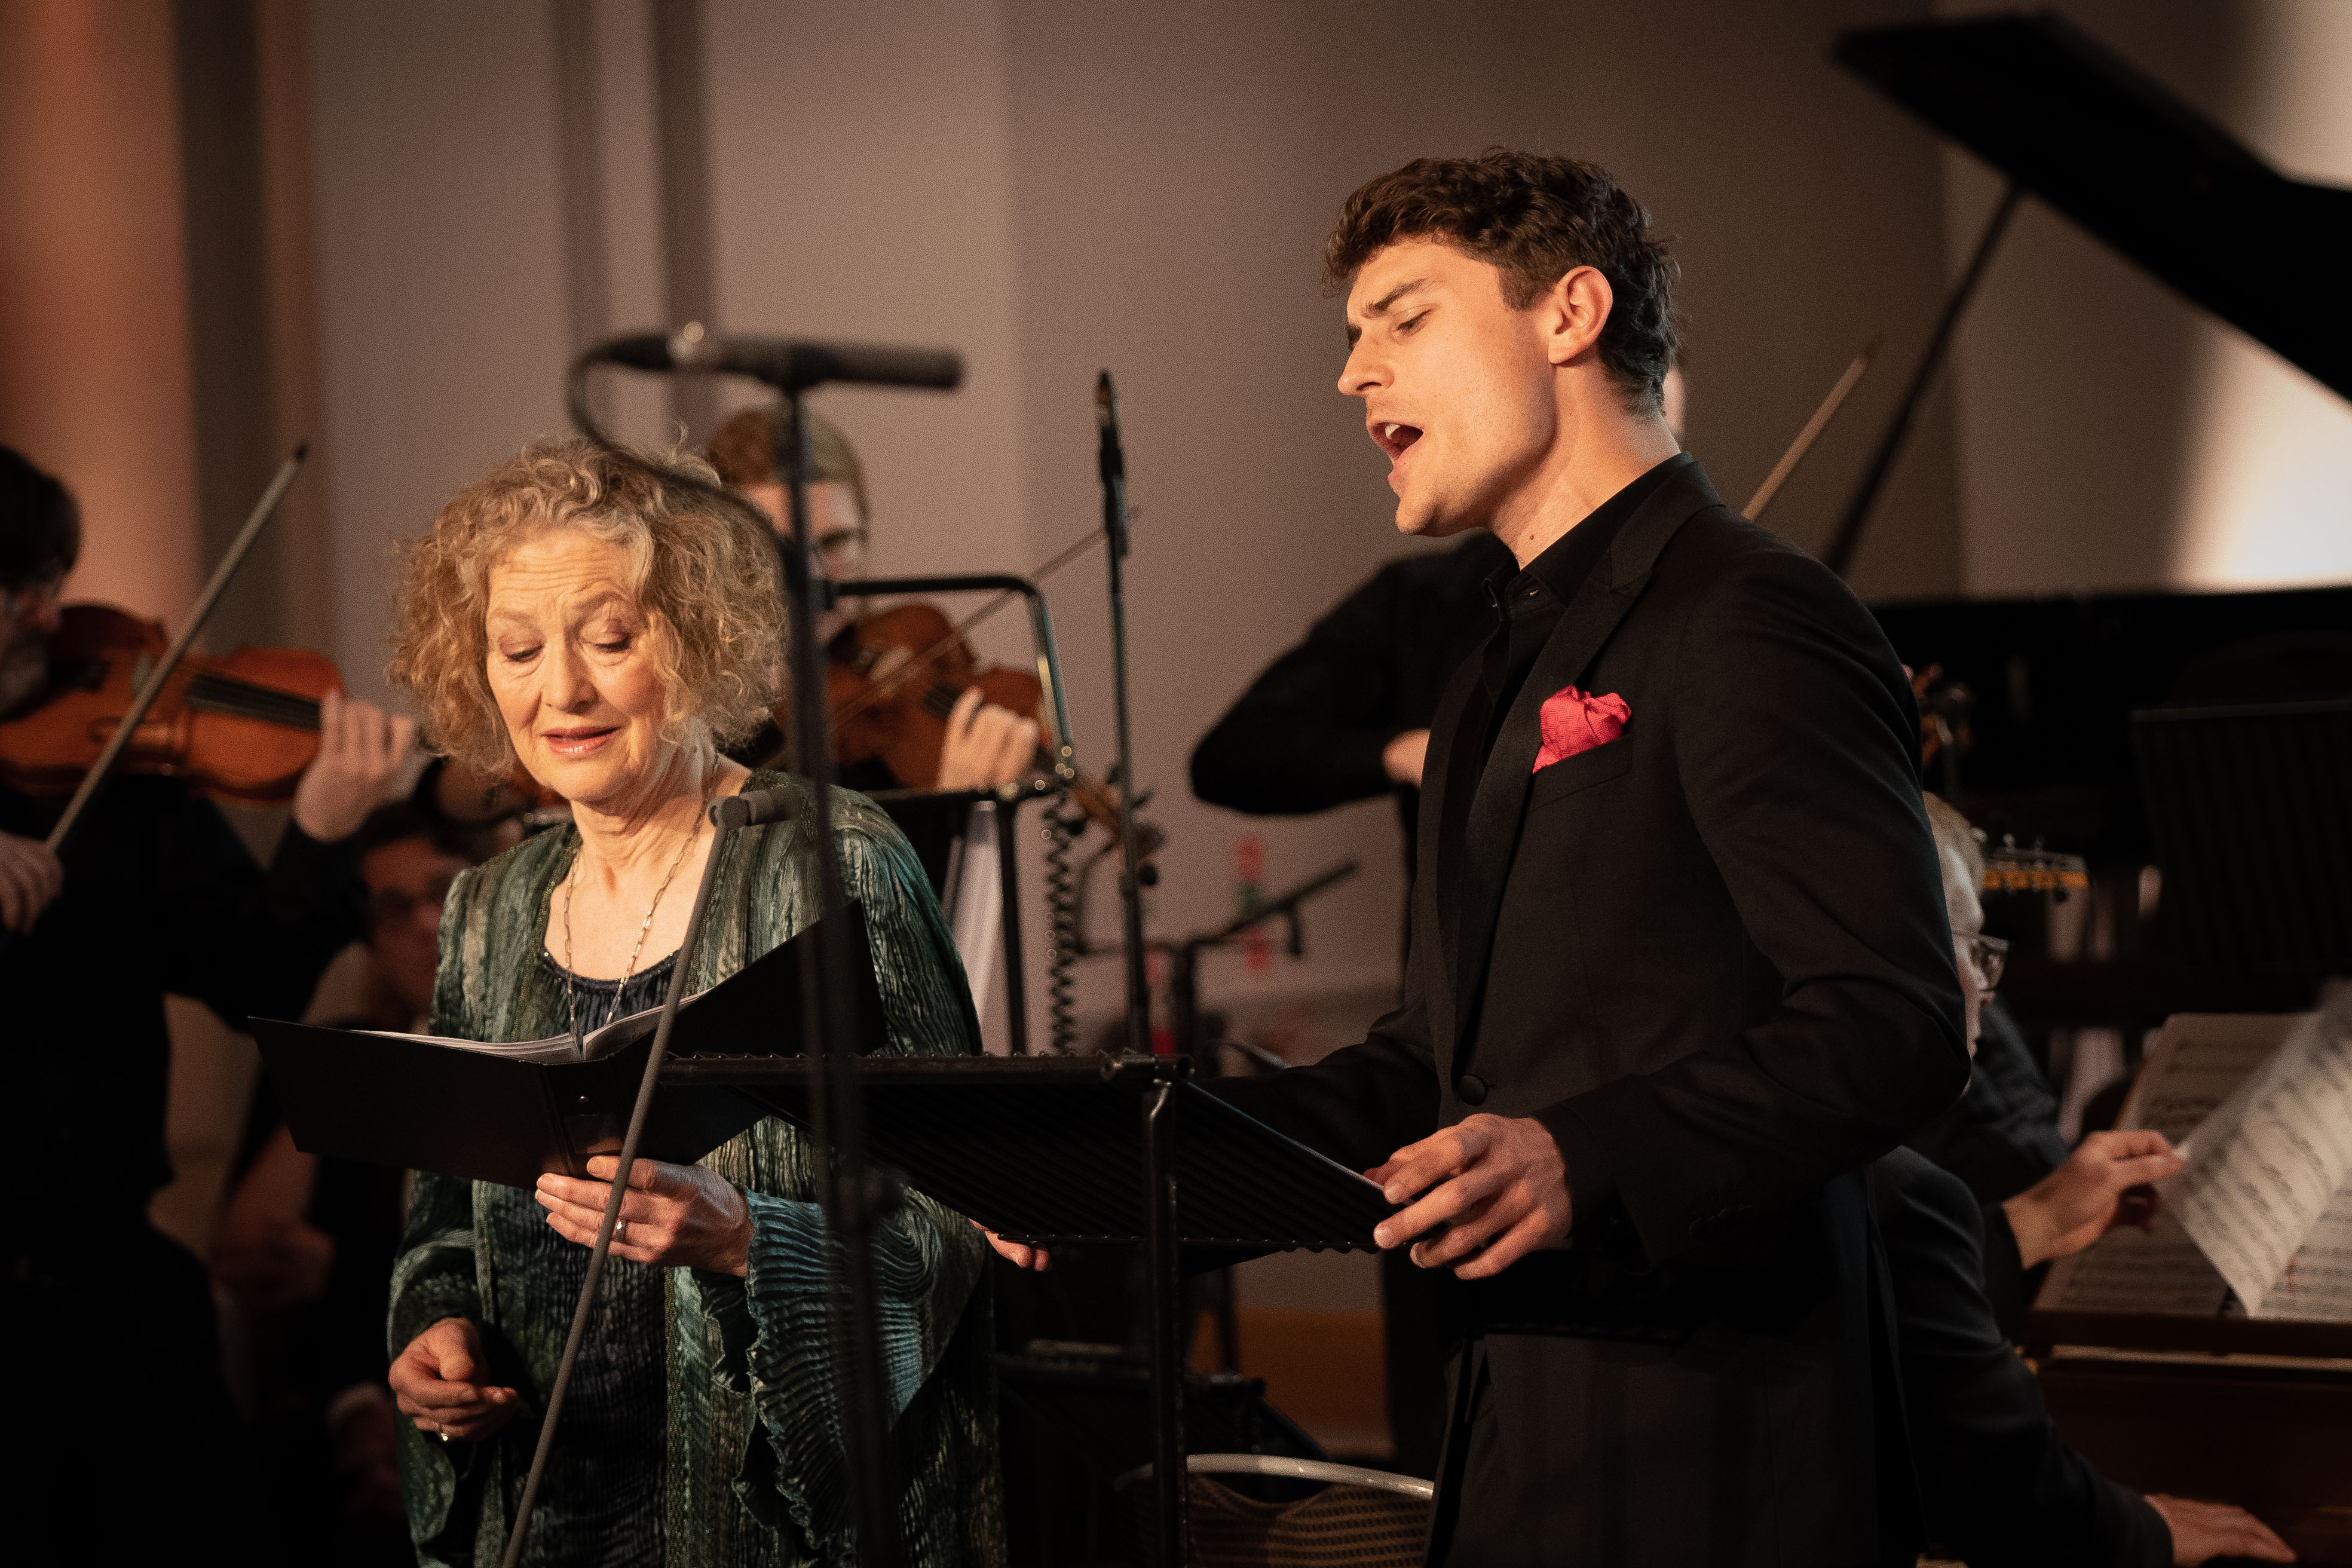 Young Artist Jakub Józef Orlinski and Lifetime Achievement Award-winner Dame Emma Kirkby perform together to close the evening